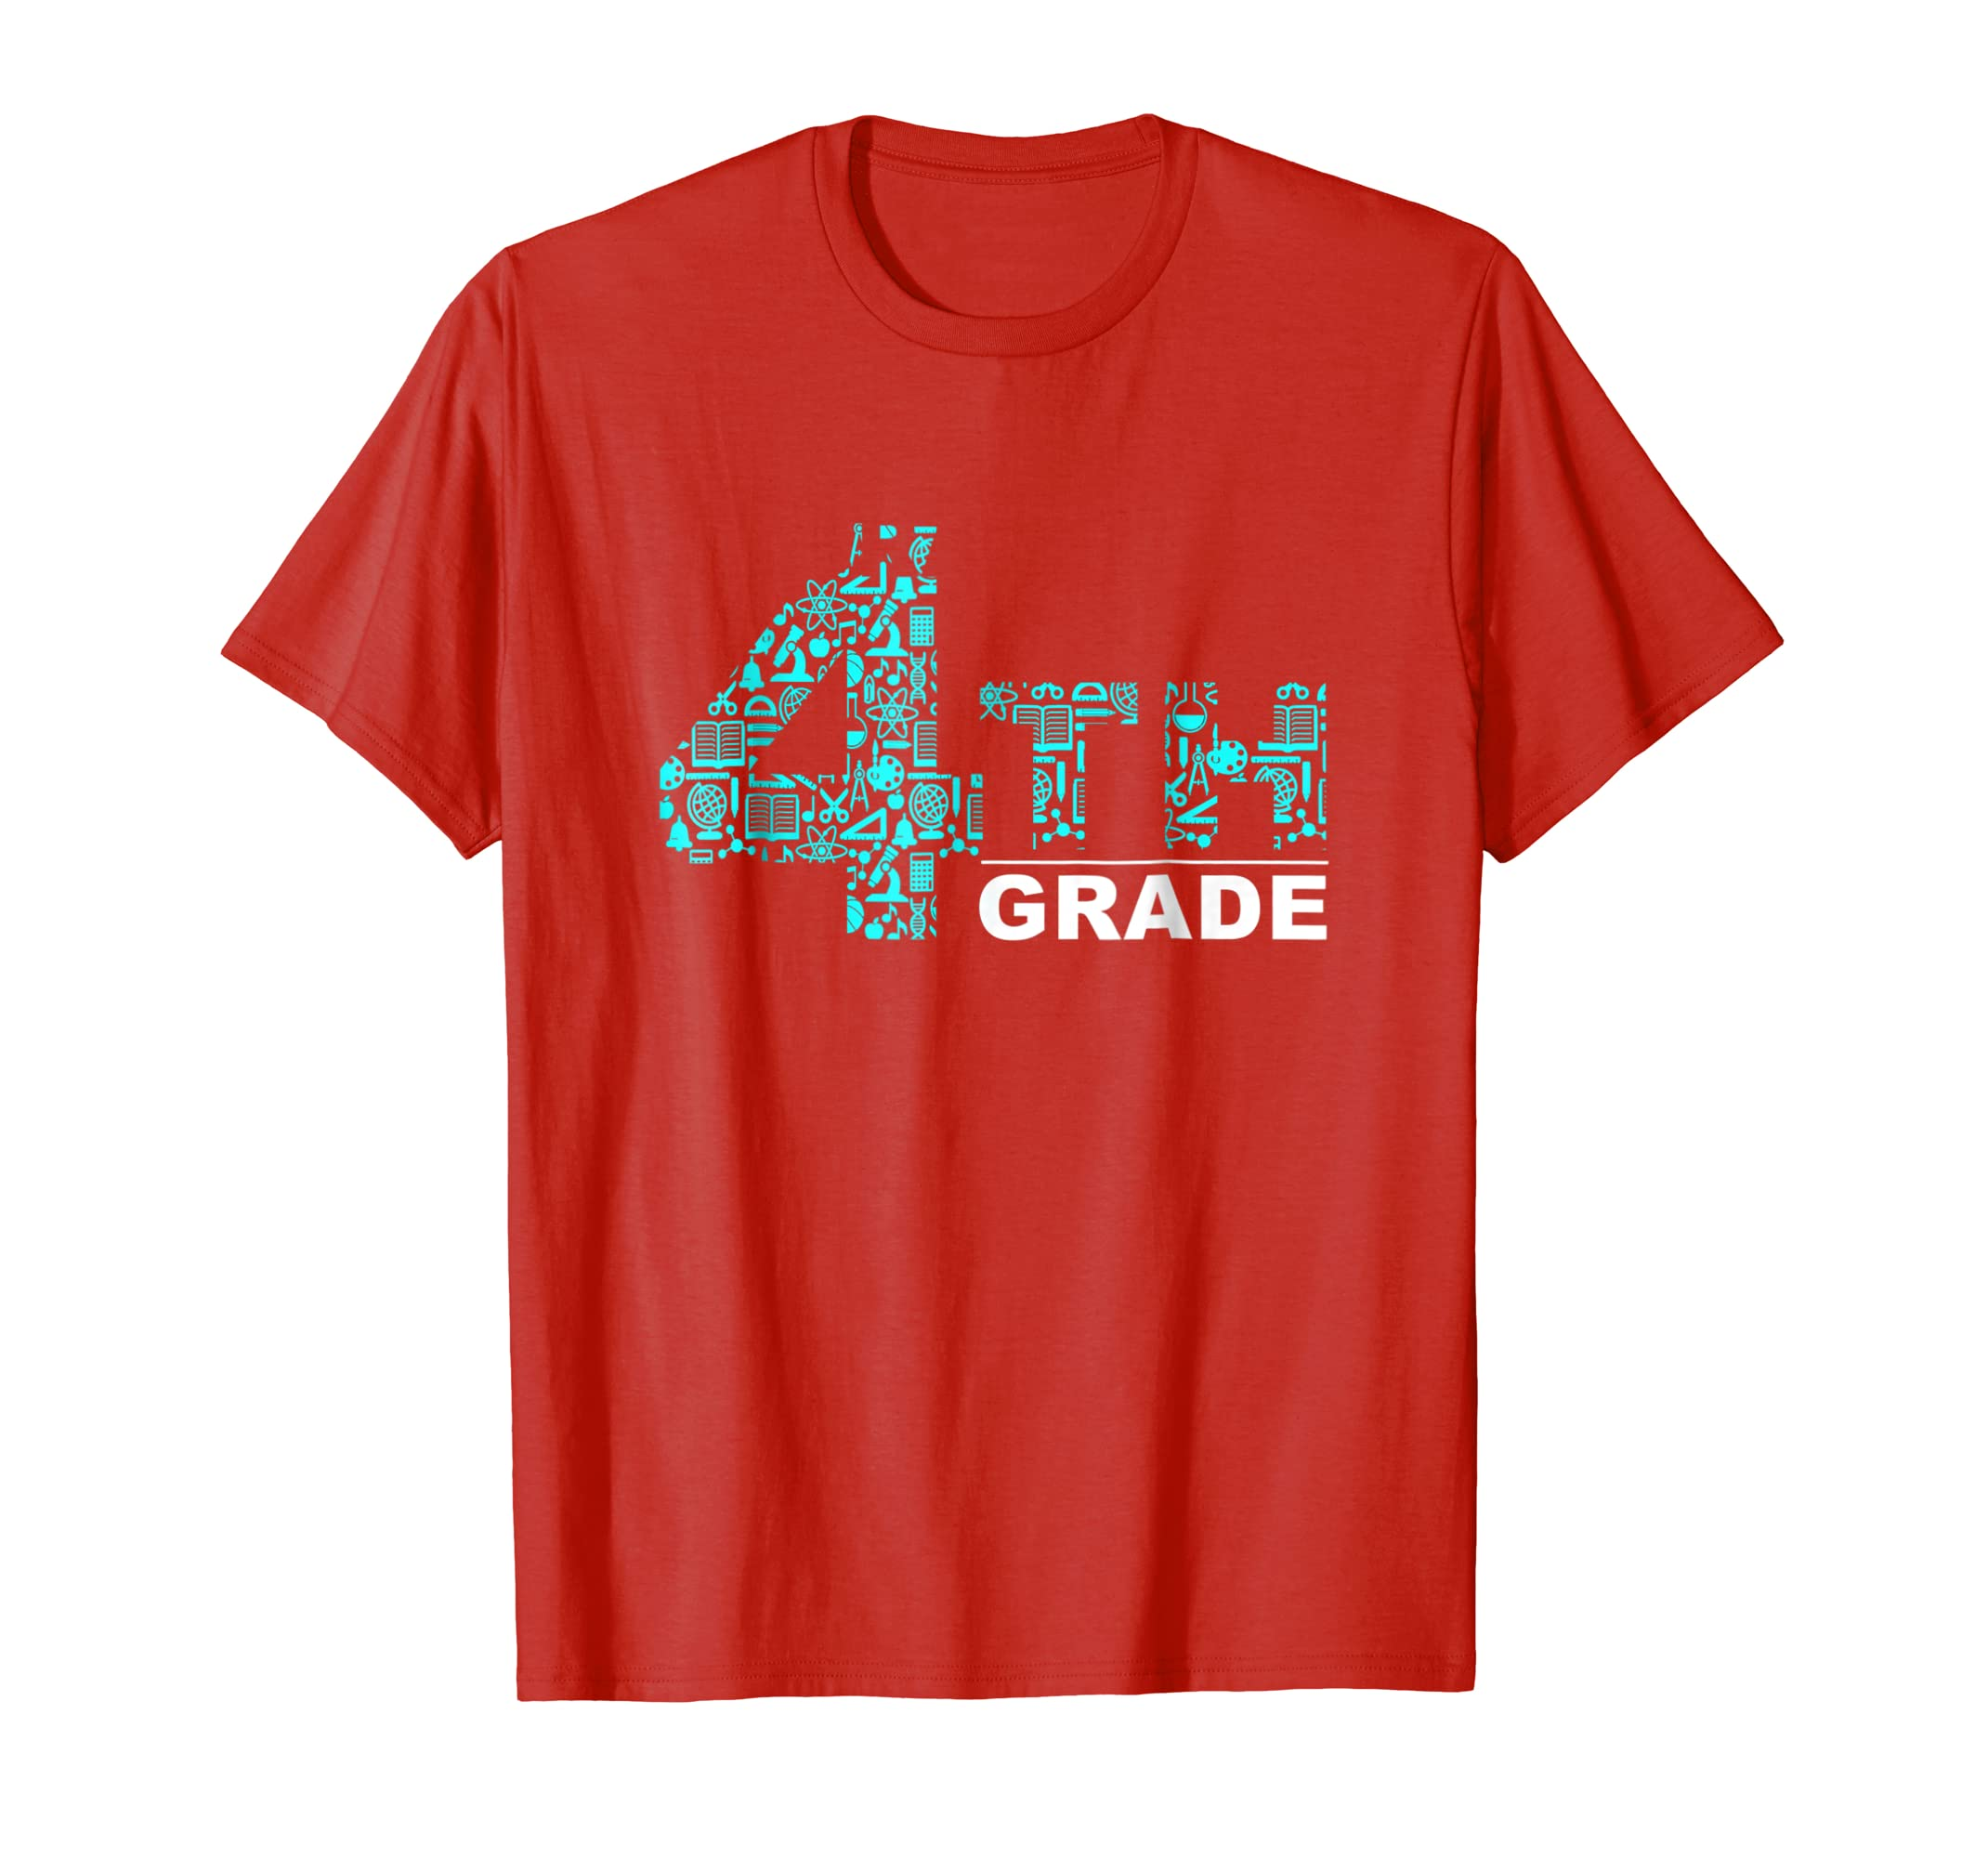 Fourth Grade Tee Shirt For Teachers & Students Of 4th Grade-Teesml